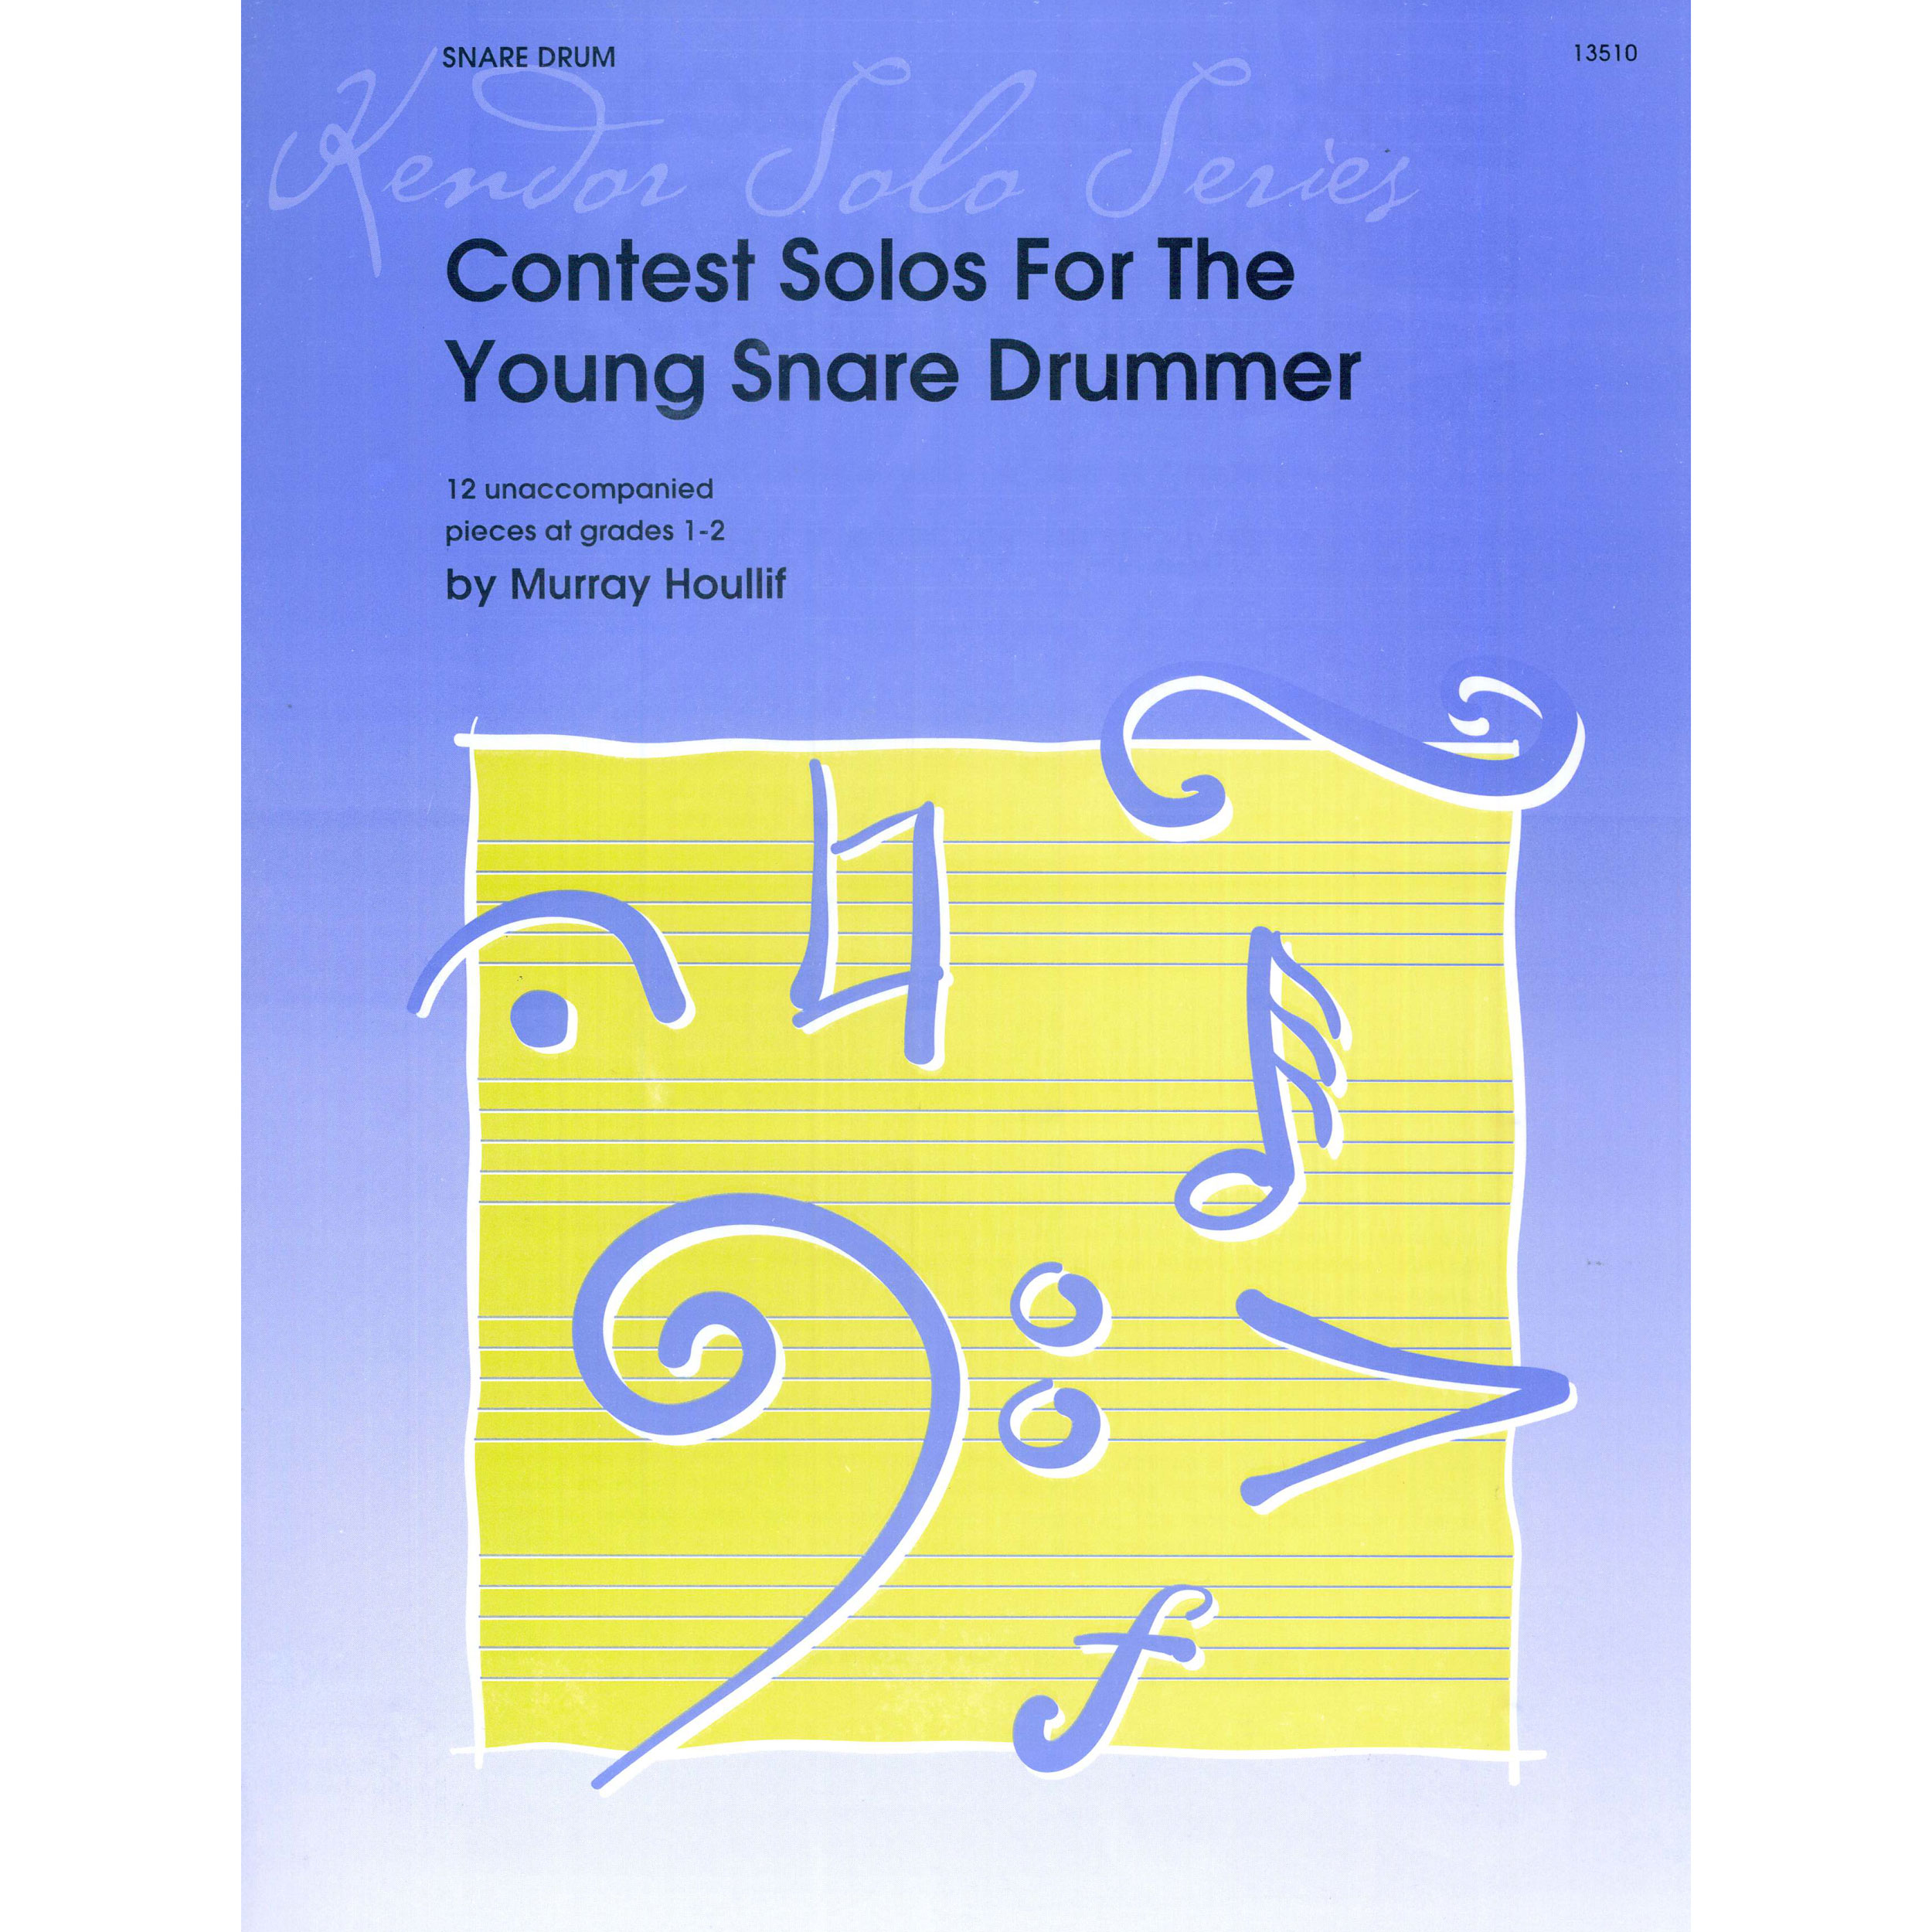 Contest Solos for the Young Snare Drummer by Murray Houllif